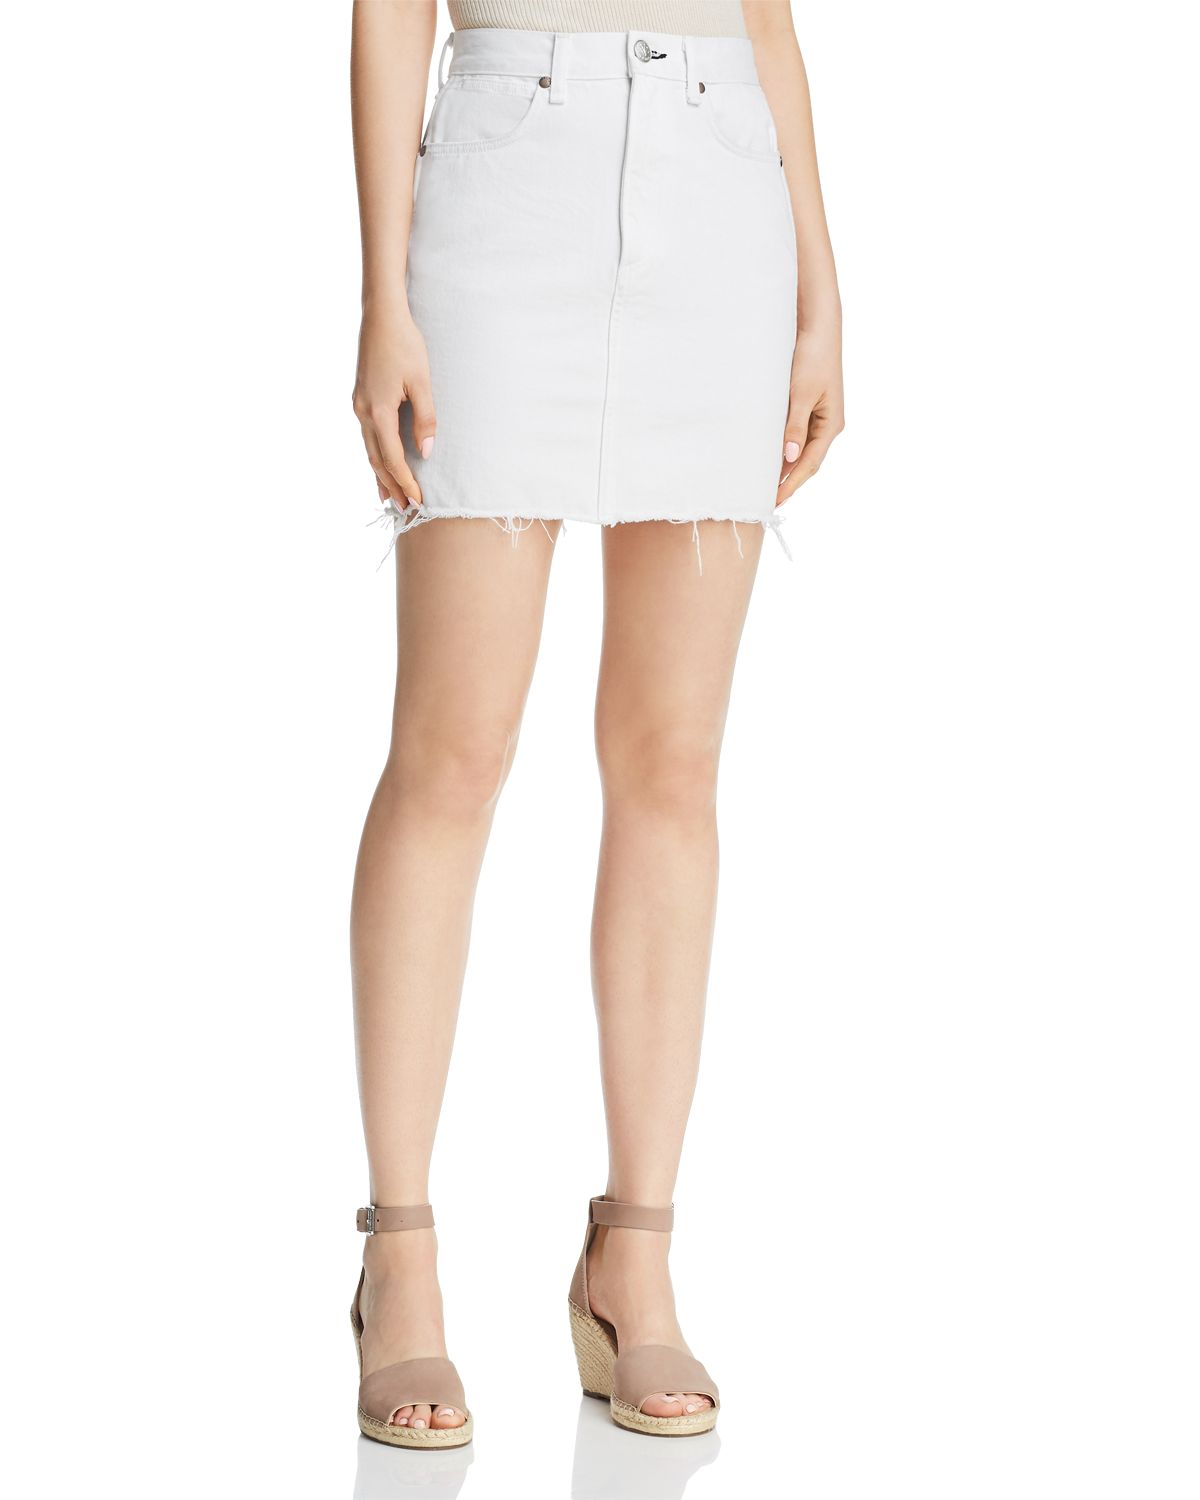 Moss Raw Edge Denim Skirt by Rag & Bone/Jean